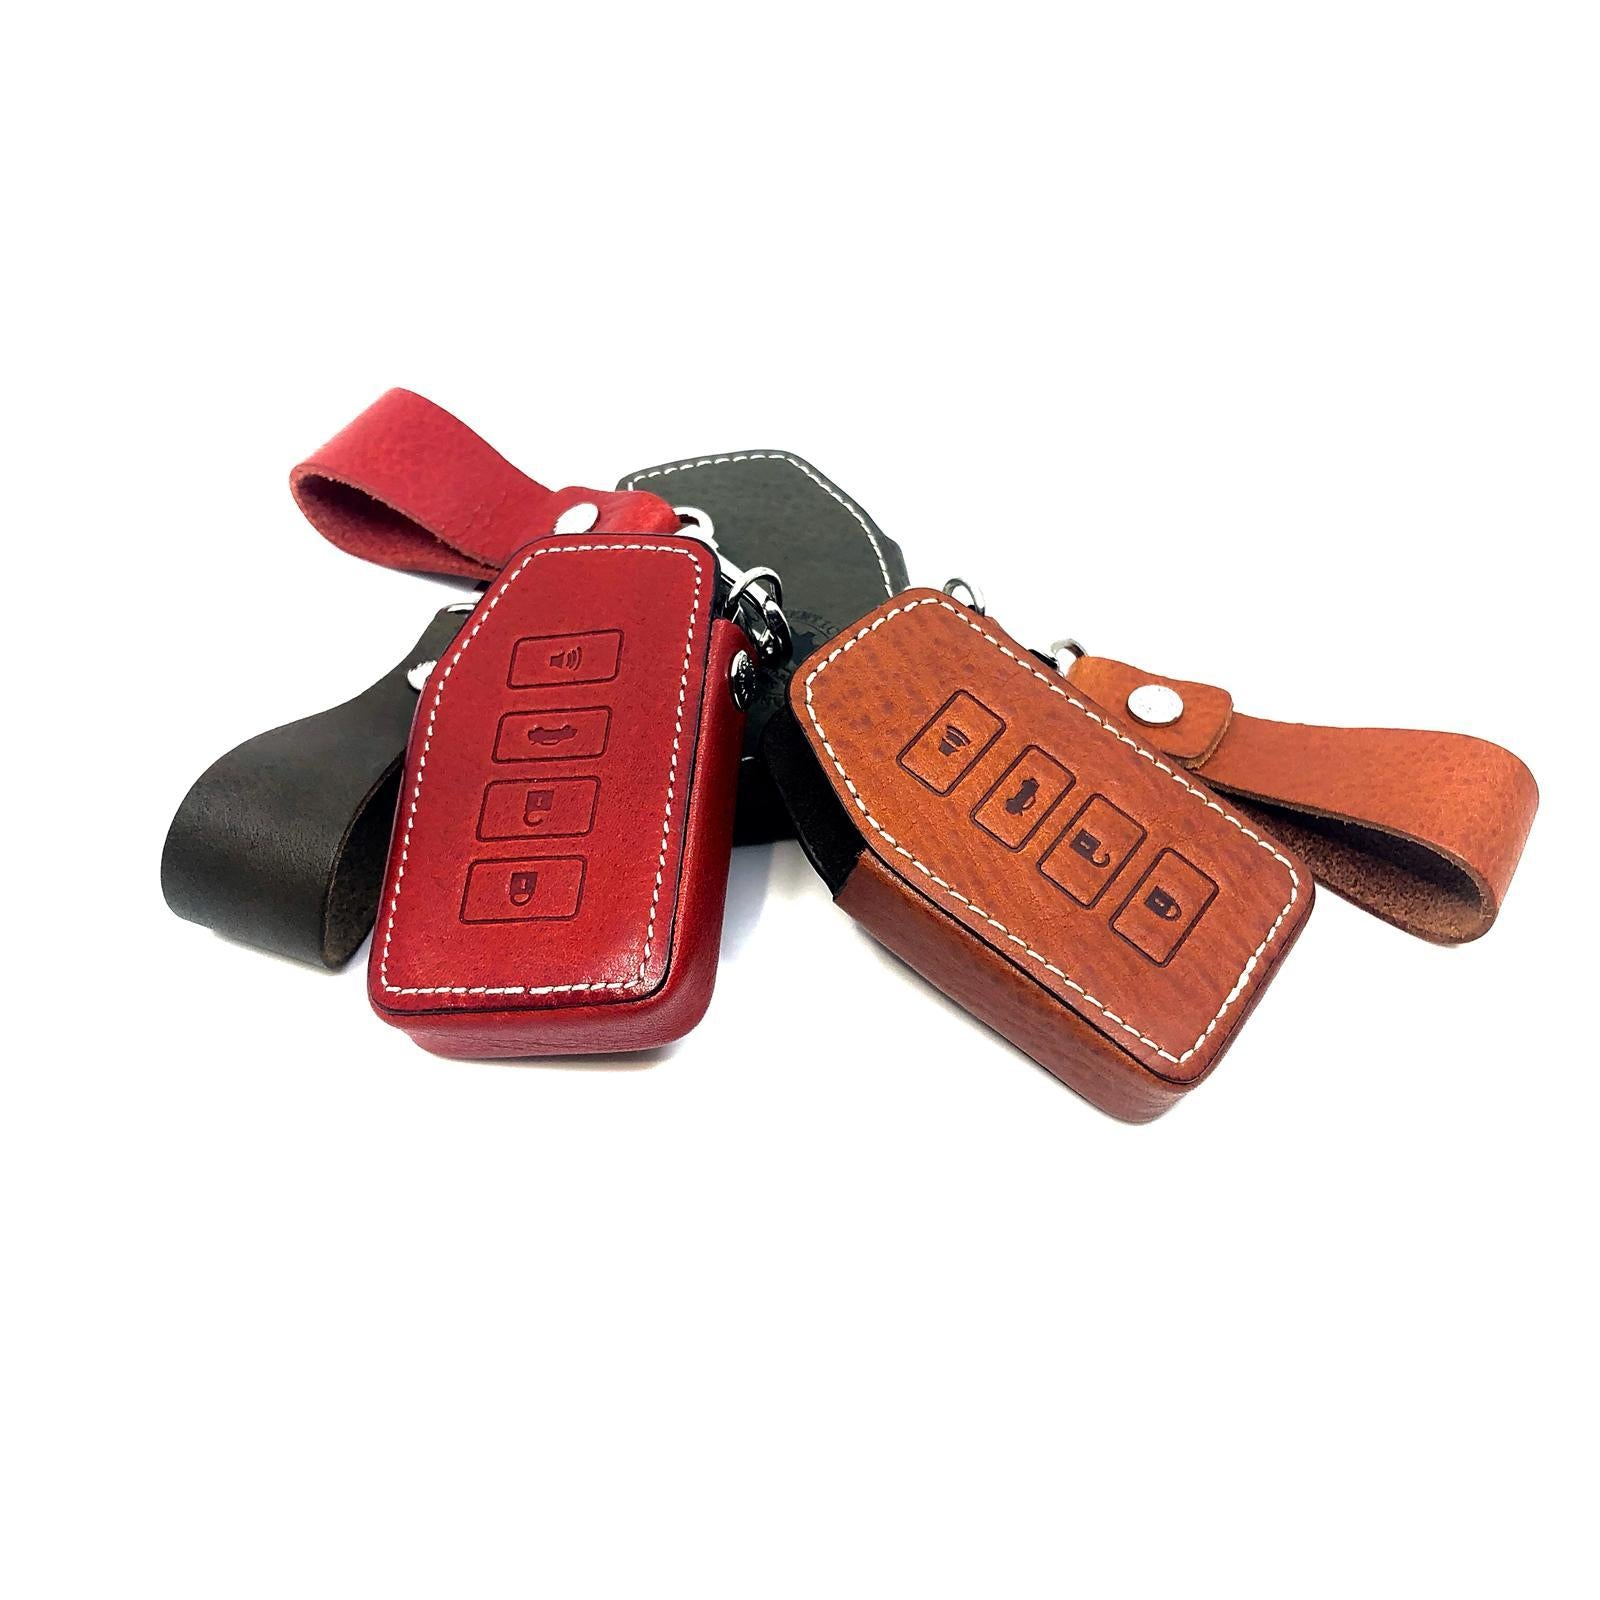 Aegis Car Key Holder - Ritz Type - LEXUS - Olive